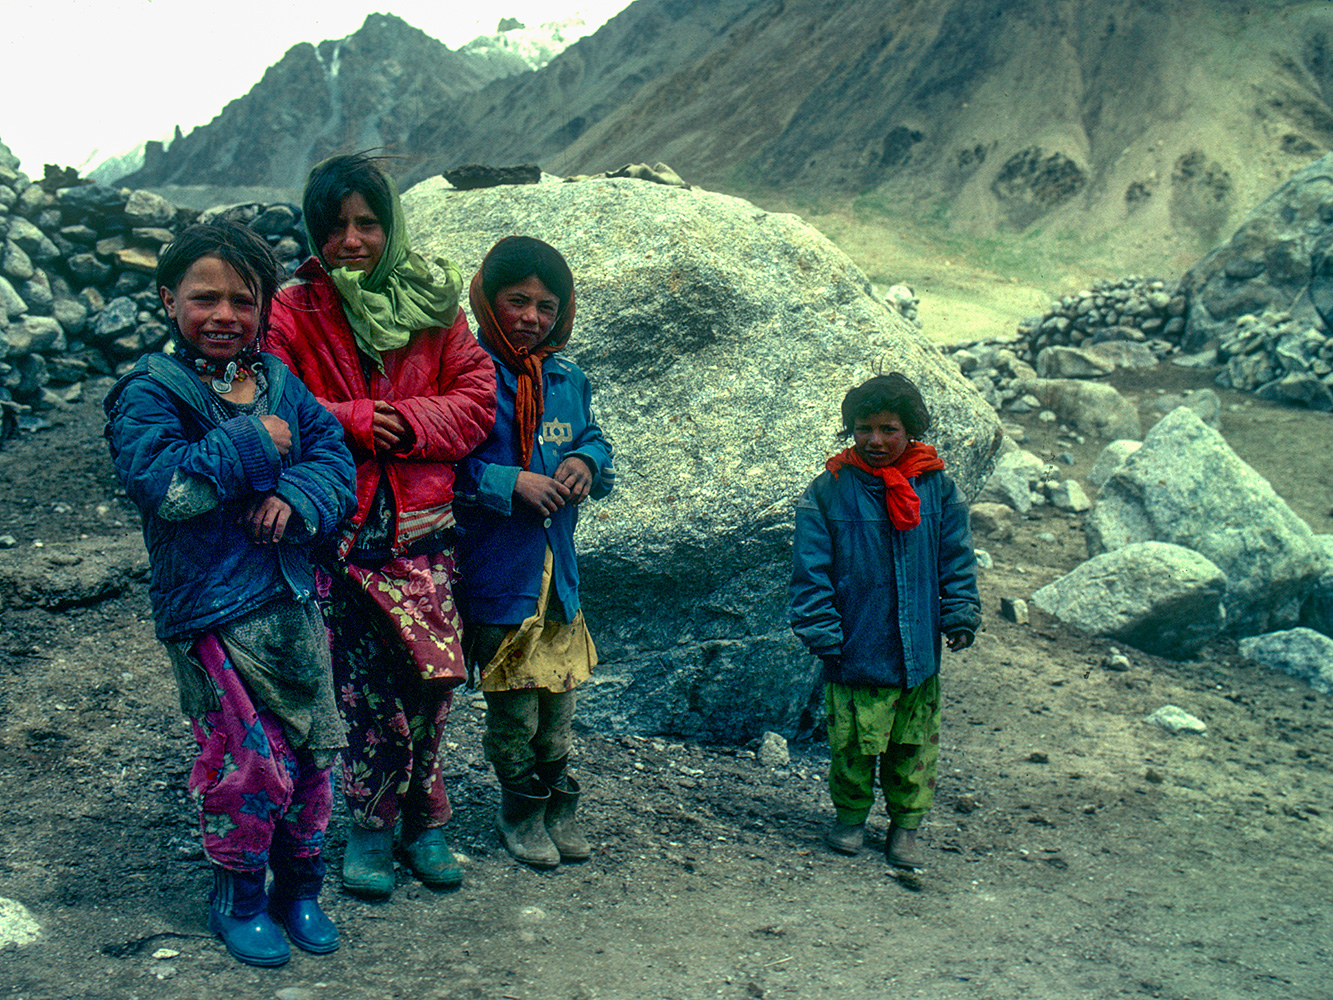 Shimshali kids at Shuwert, the summer grazing settlement on the Shimshal Pass (4650m)